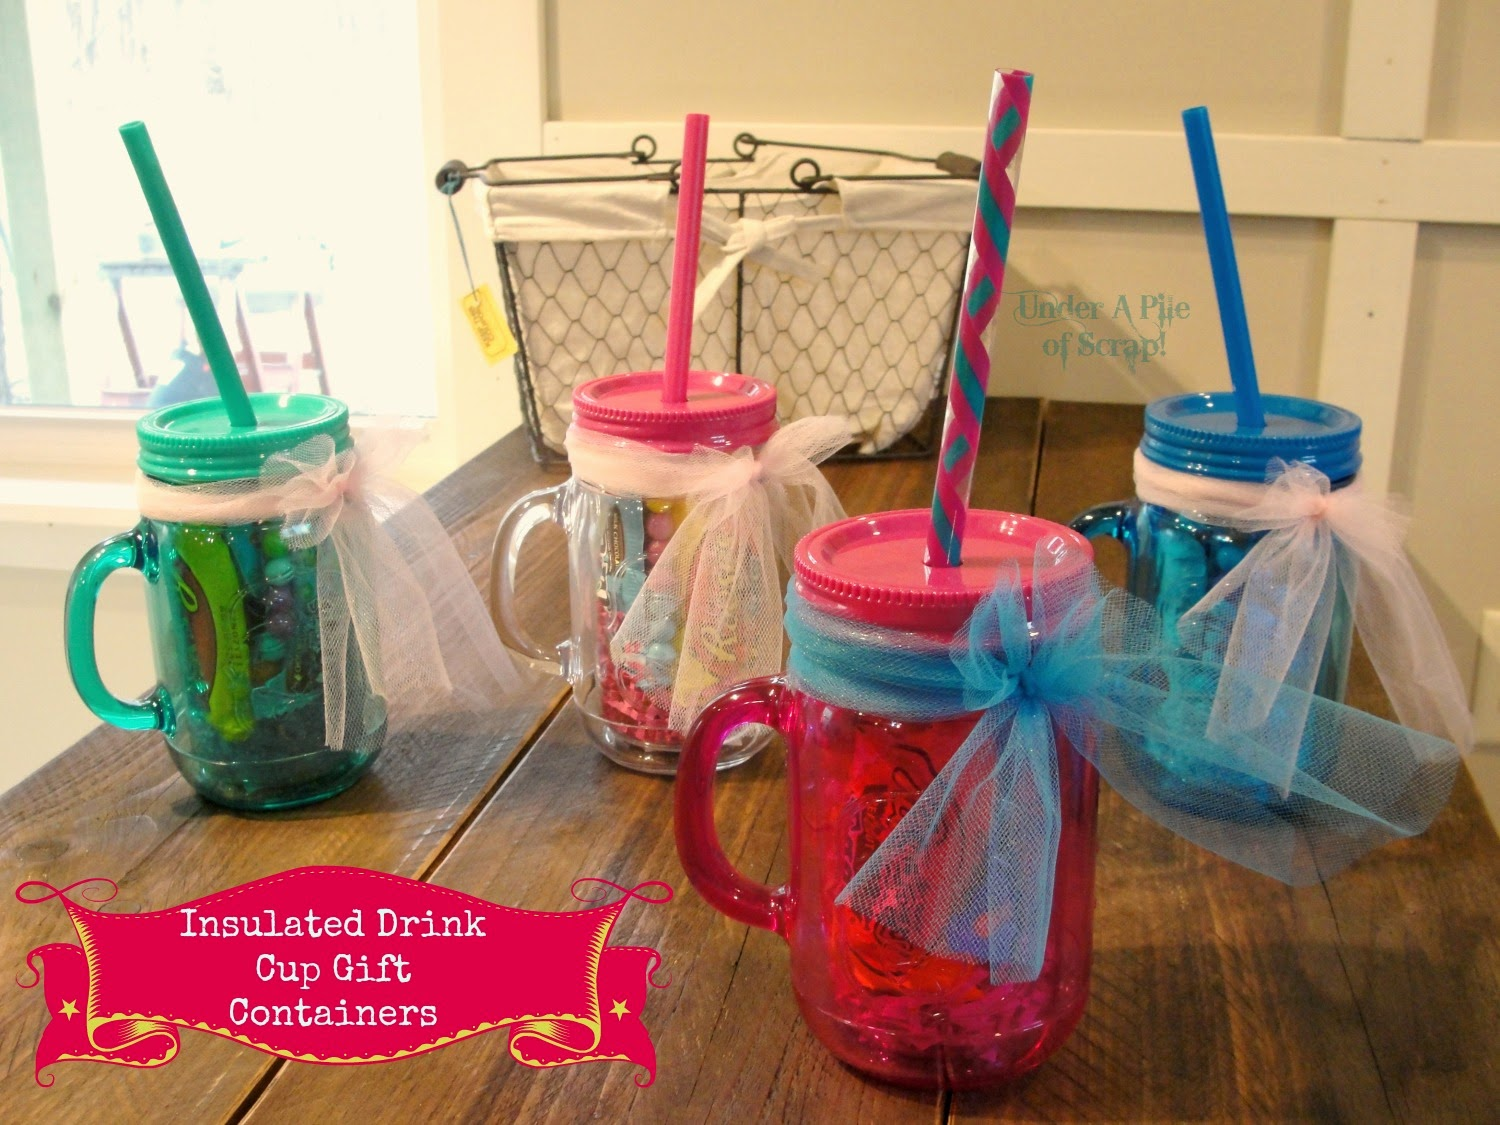 Insulted Drink Cup Gift Containers, Drink cup, container packaging, thermal cup, canning jars, insulated drink cups